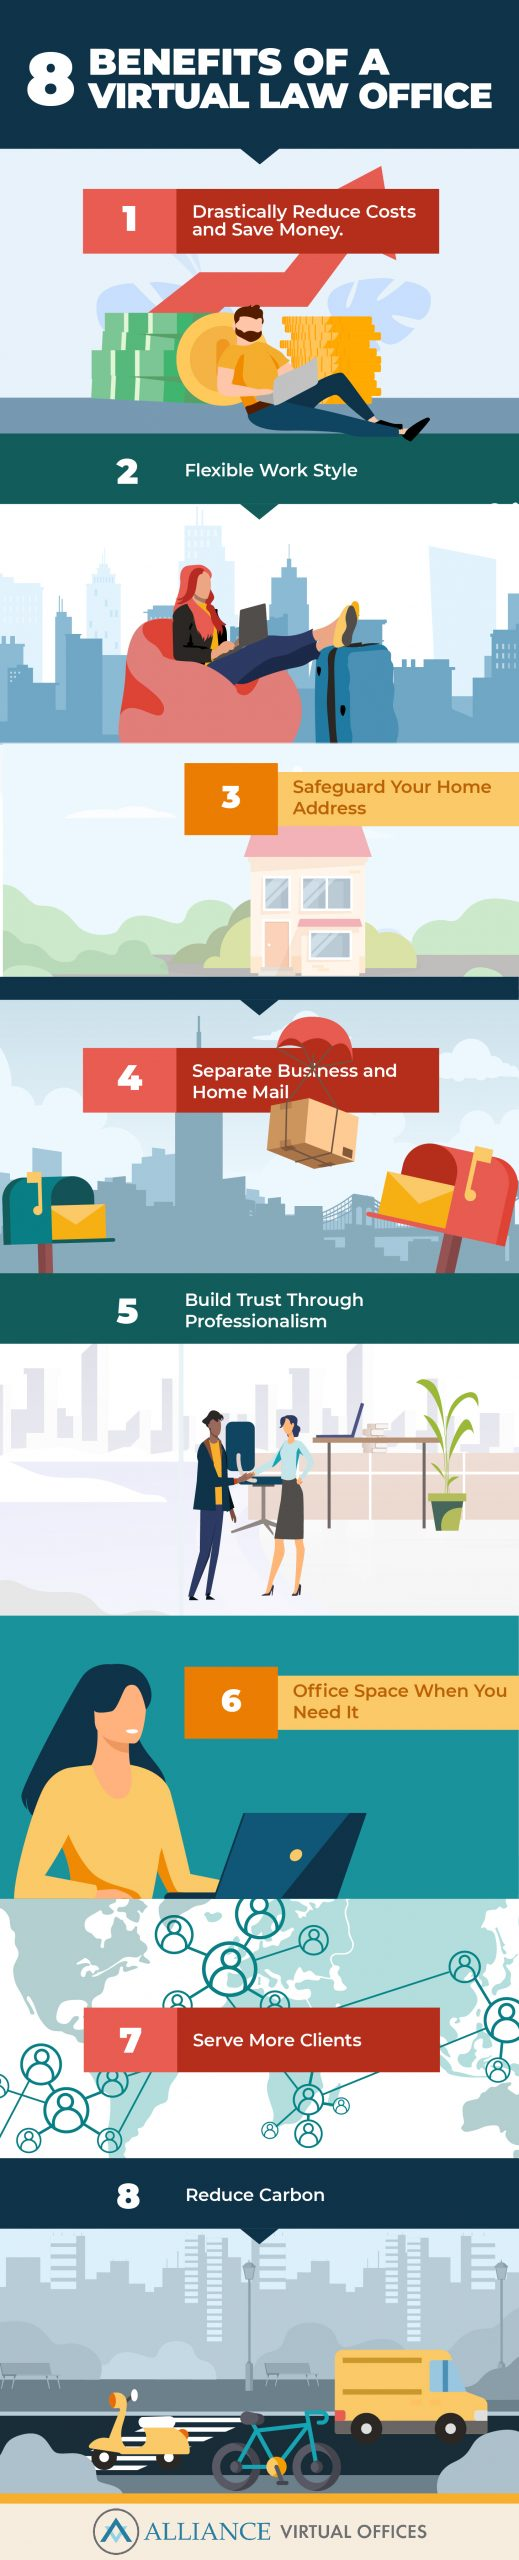 8 benefits of a virtual law office infographic